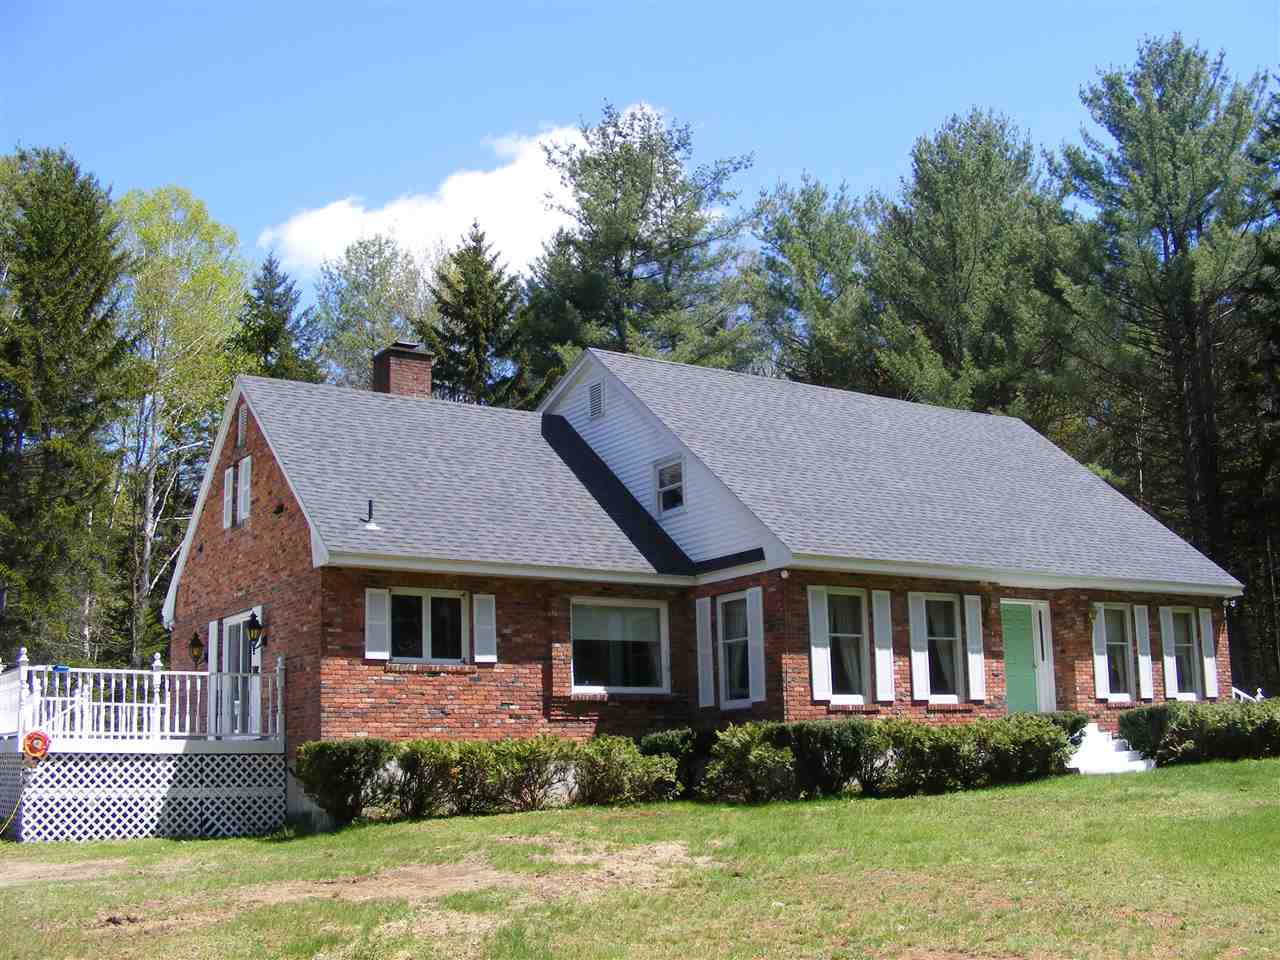 141 State Route 2 Shelburne Nh 03581 Mls 4642953